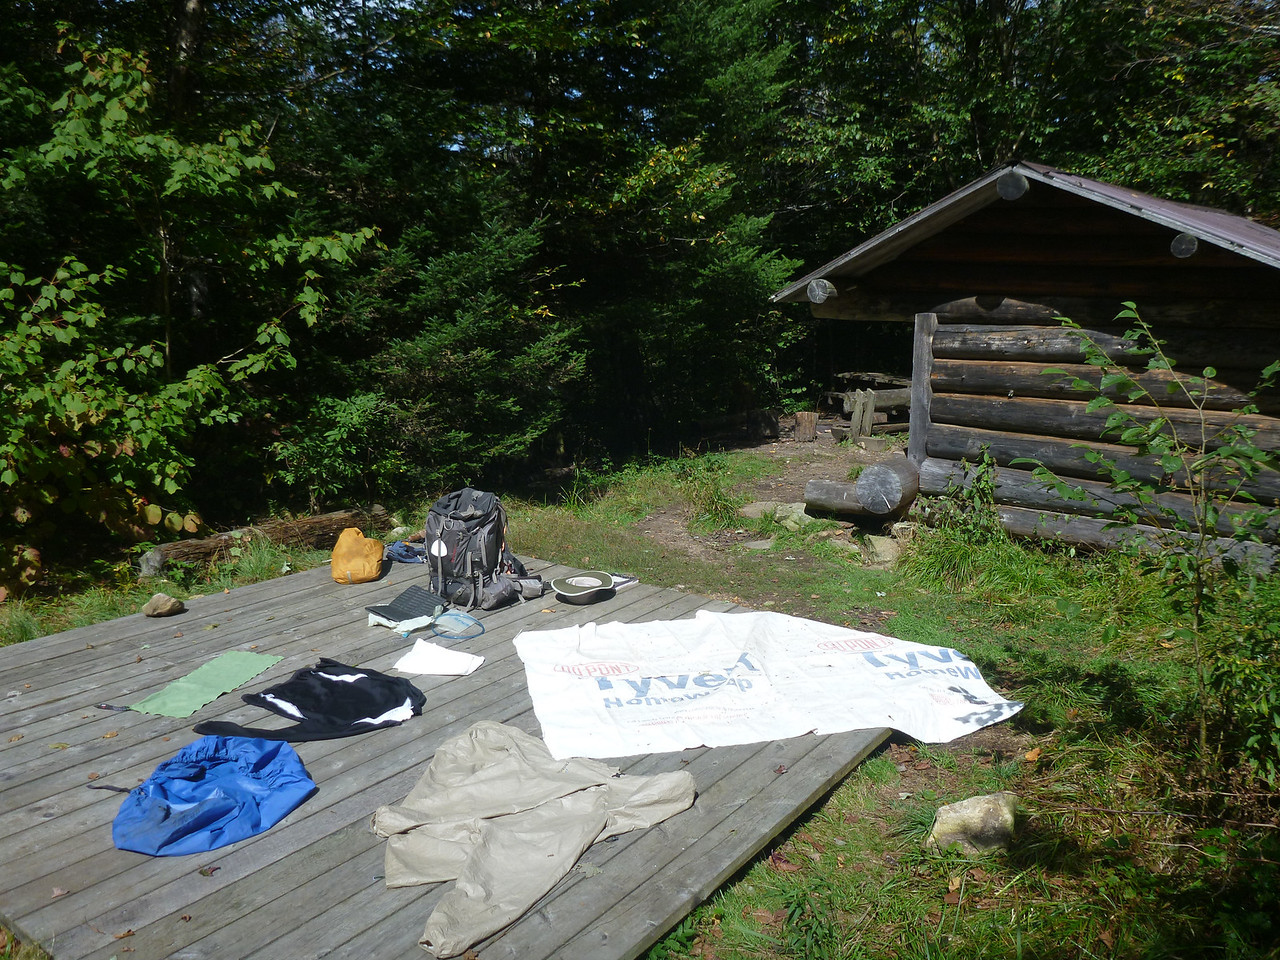 Drying out at Peru Peak Shelter